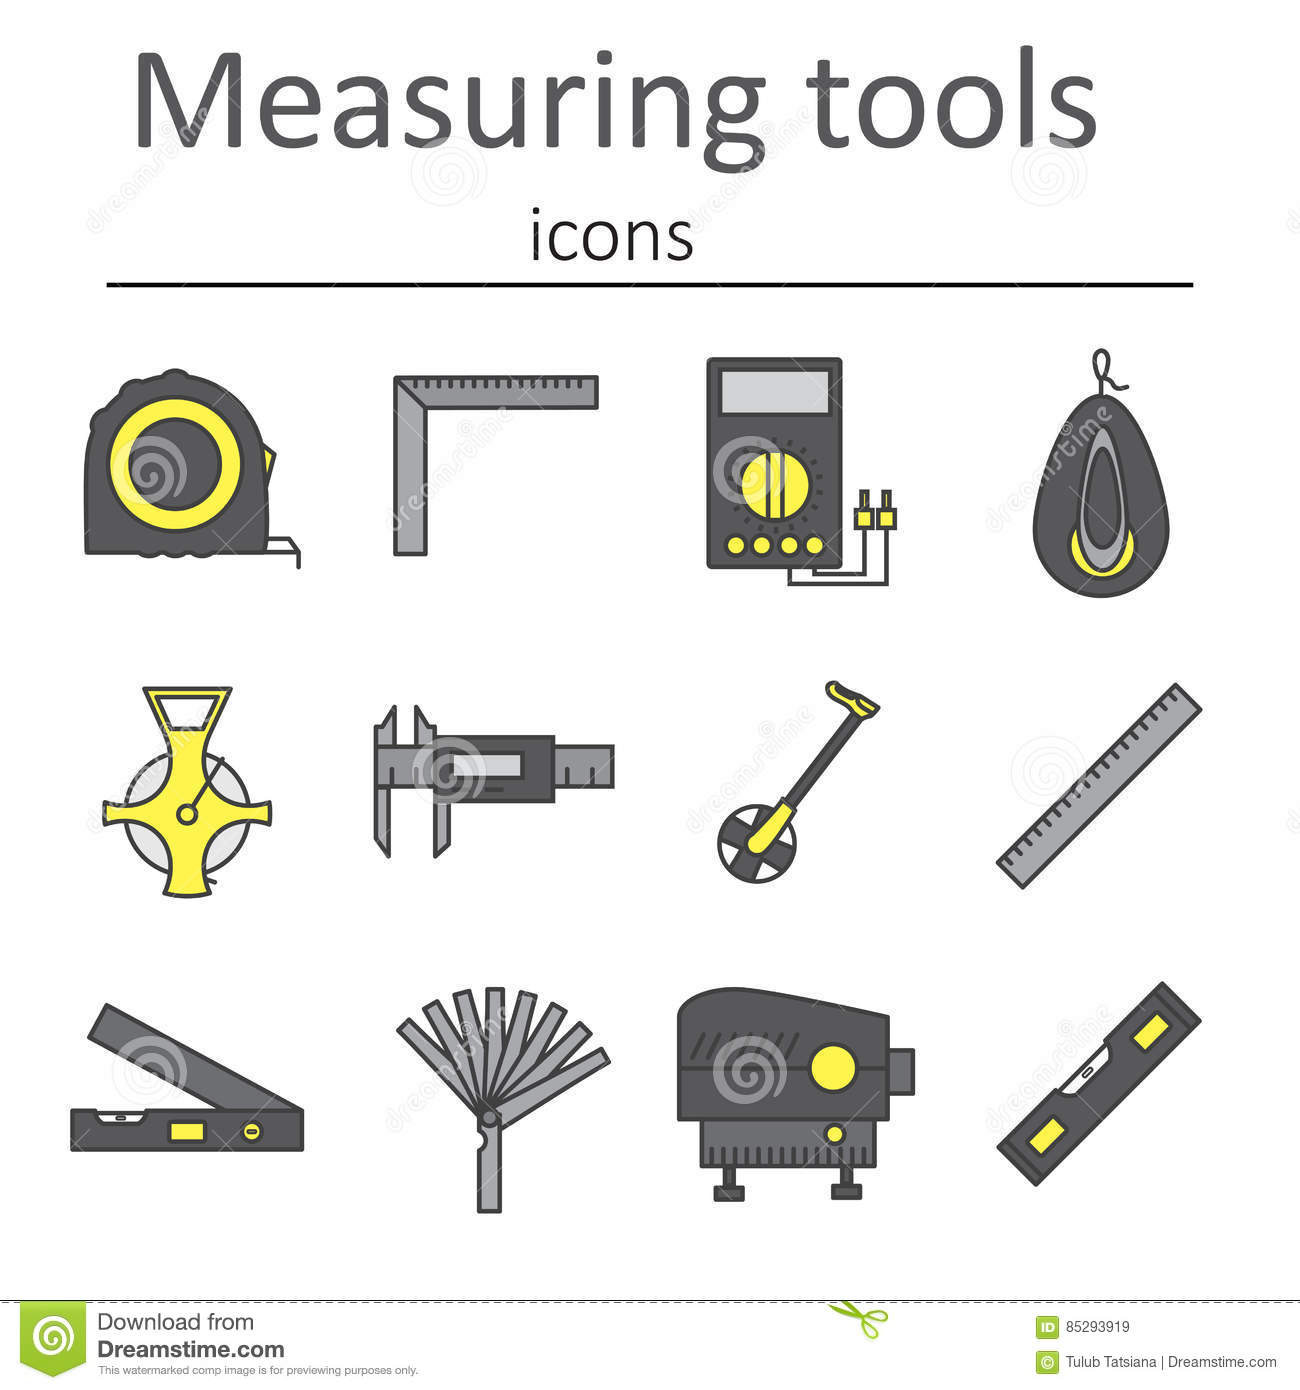 Used Measuring Instruments : A set of measuring instruments used in construction to